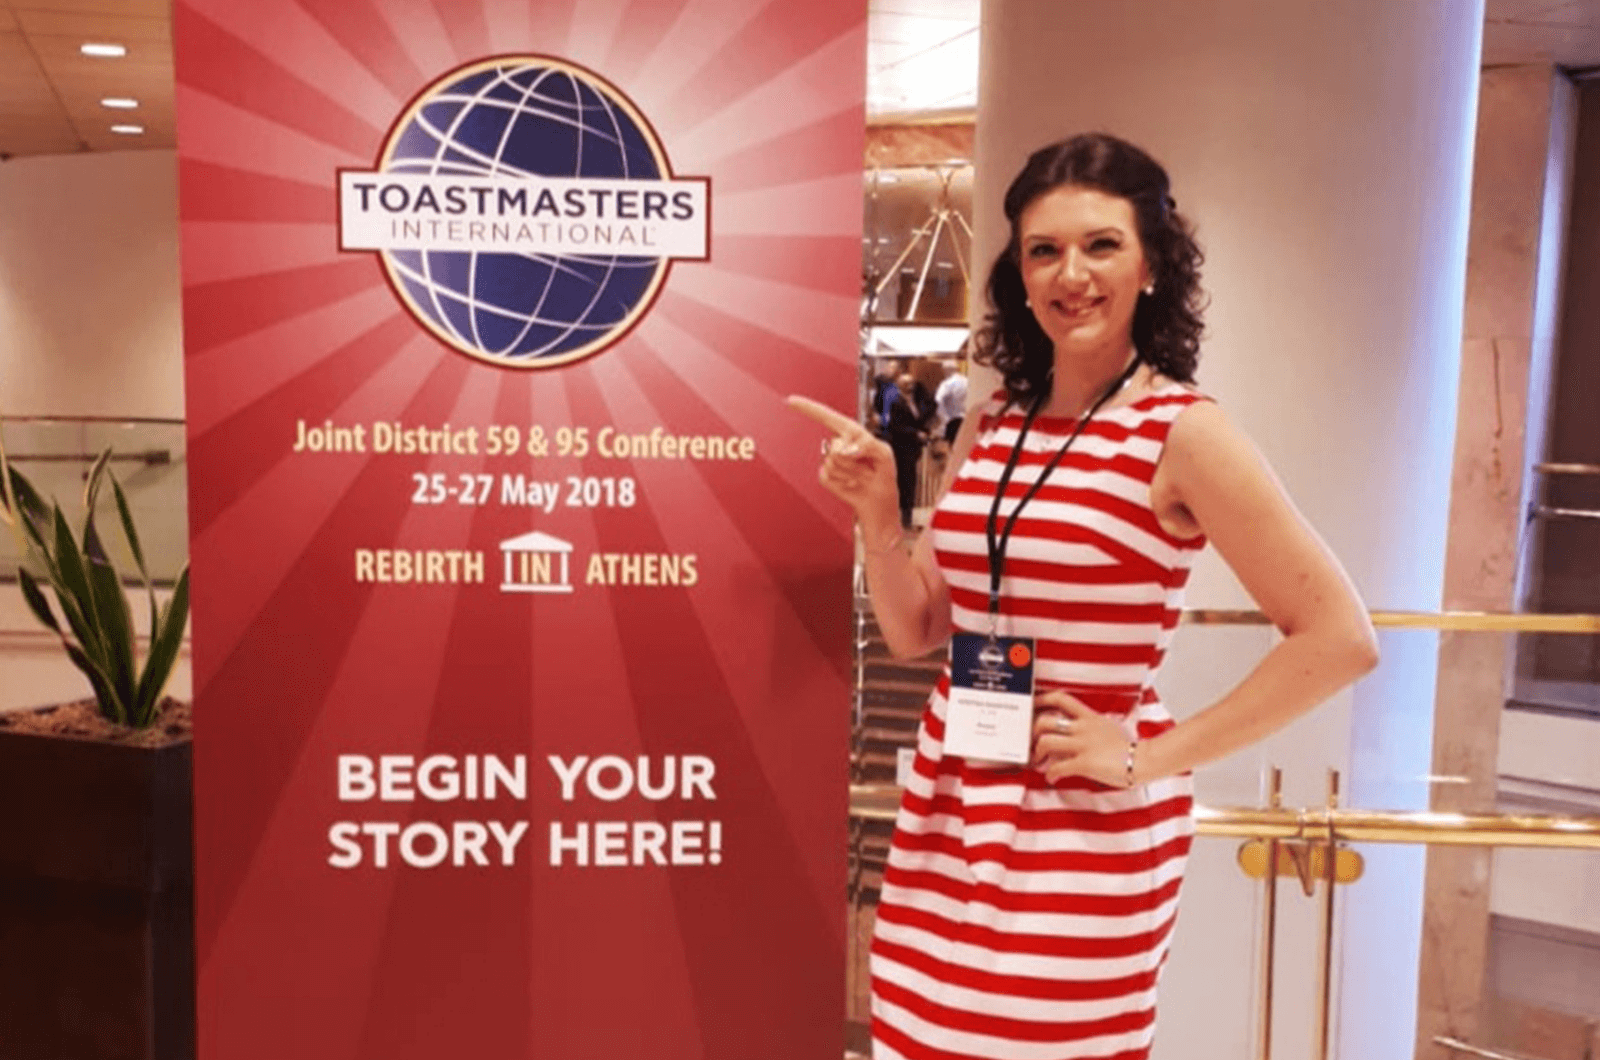 Kristina Sharykina was introduced to Toastmasters by her boyfriend Alex de Jong, who was introduced by his father.